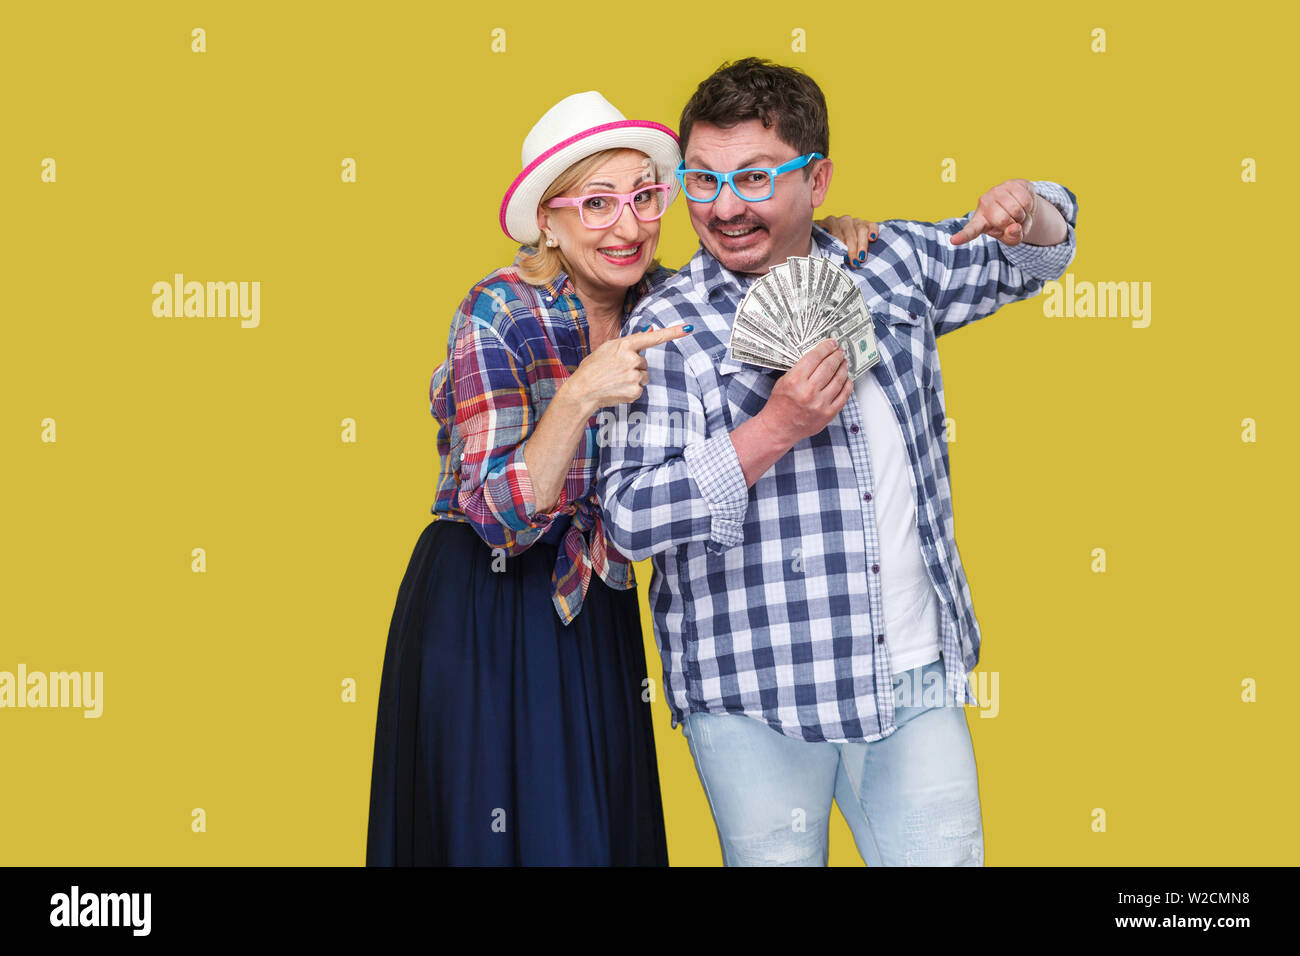 Happy wealthy family, adult man and woman in casual checkered shirt standing pickaback together, holding fan of dollar and pointing finger to money. I Stock Photo